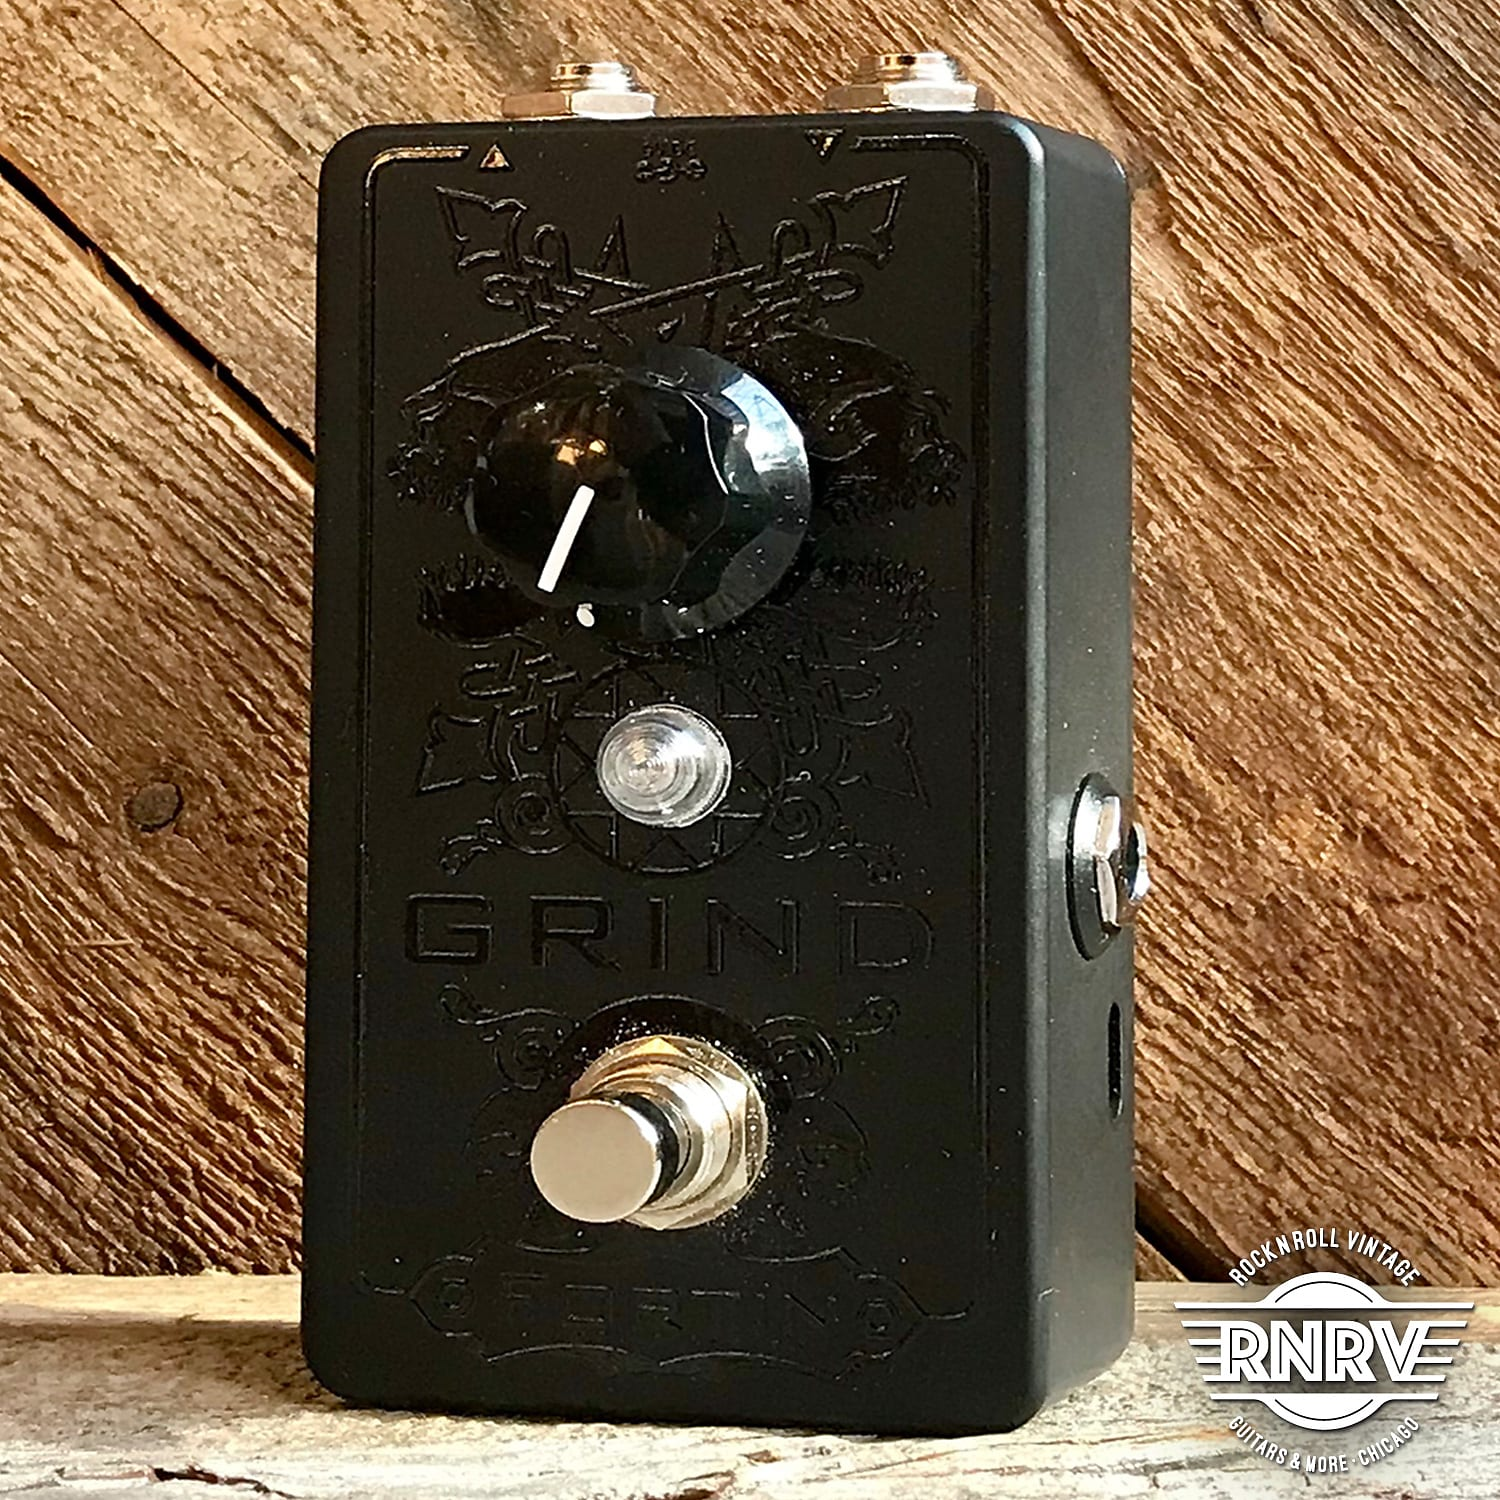 Fortin Amplification Grind BlackOut